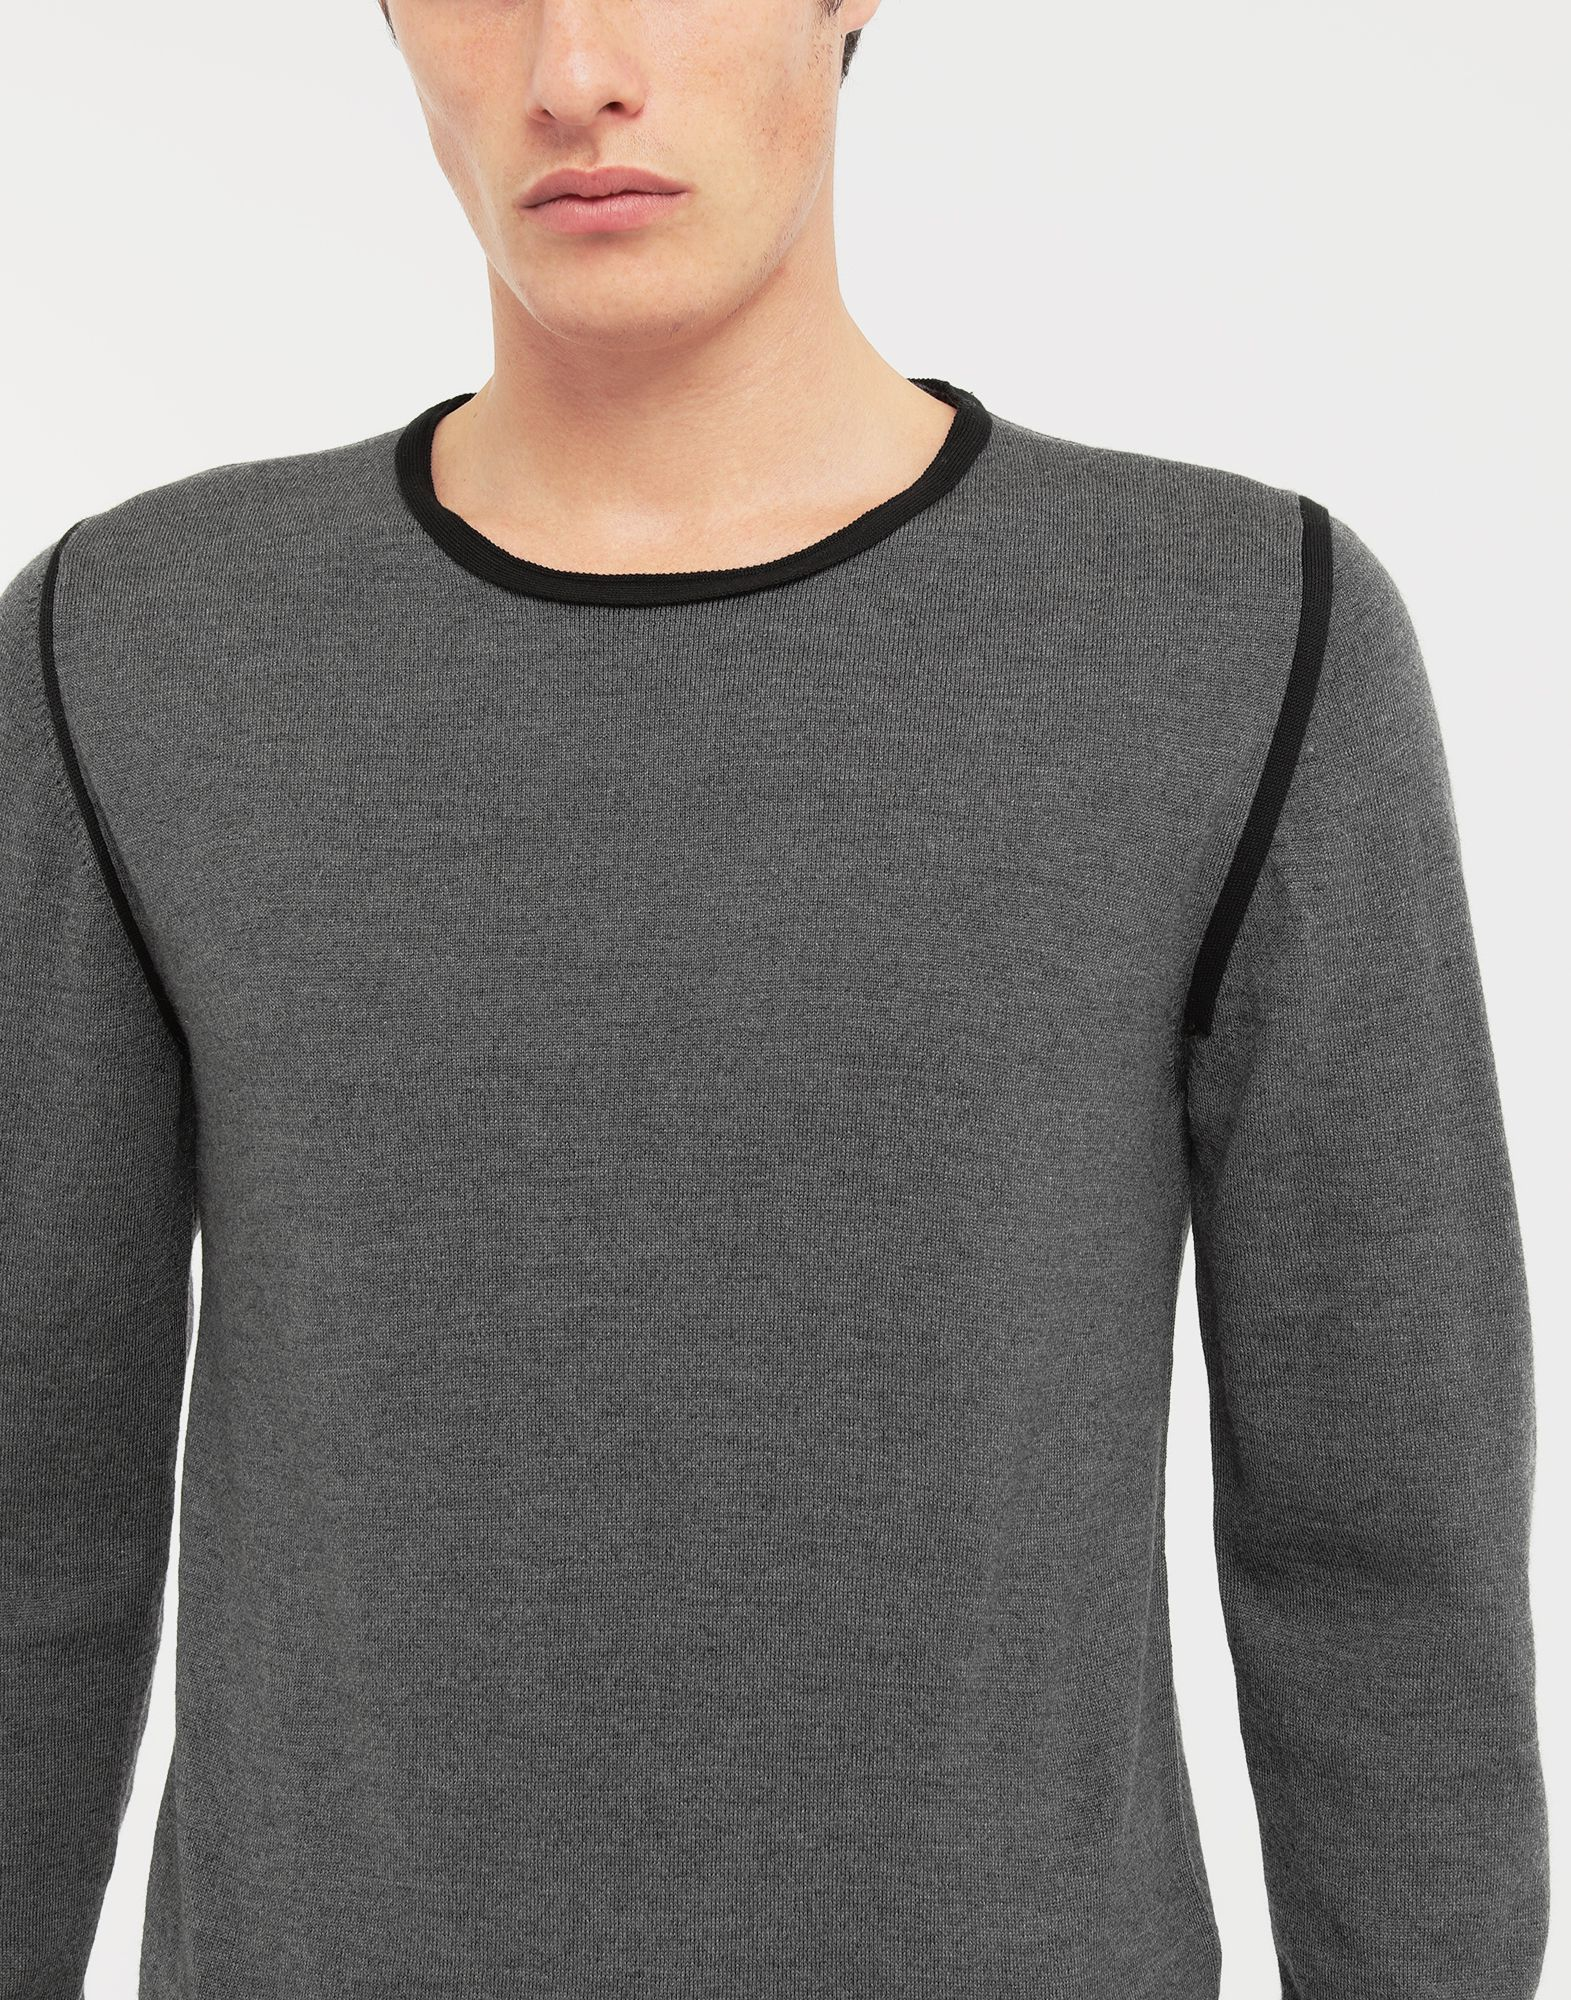 MAISON MARGIELA Cotton-trimmed knit jersey pullover Crewneck sweater Man a